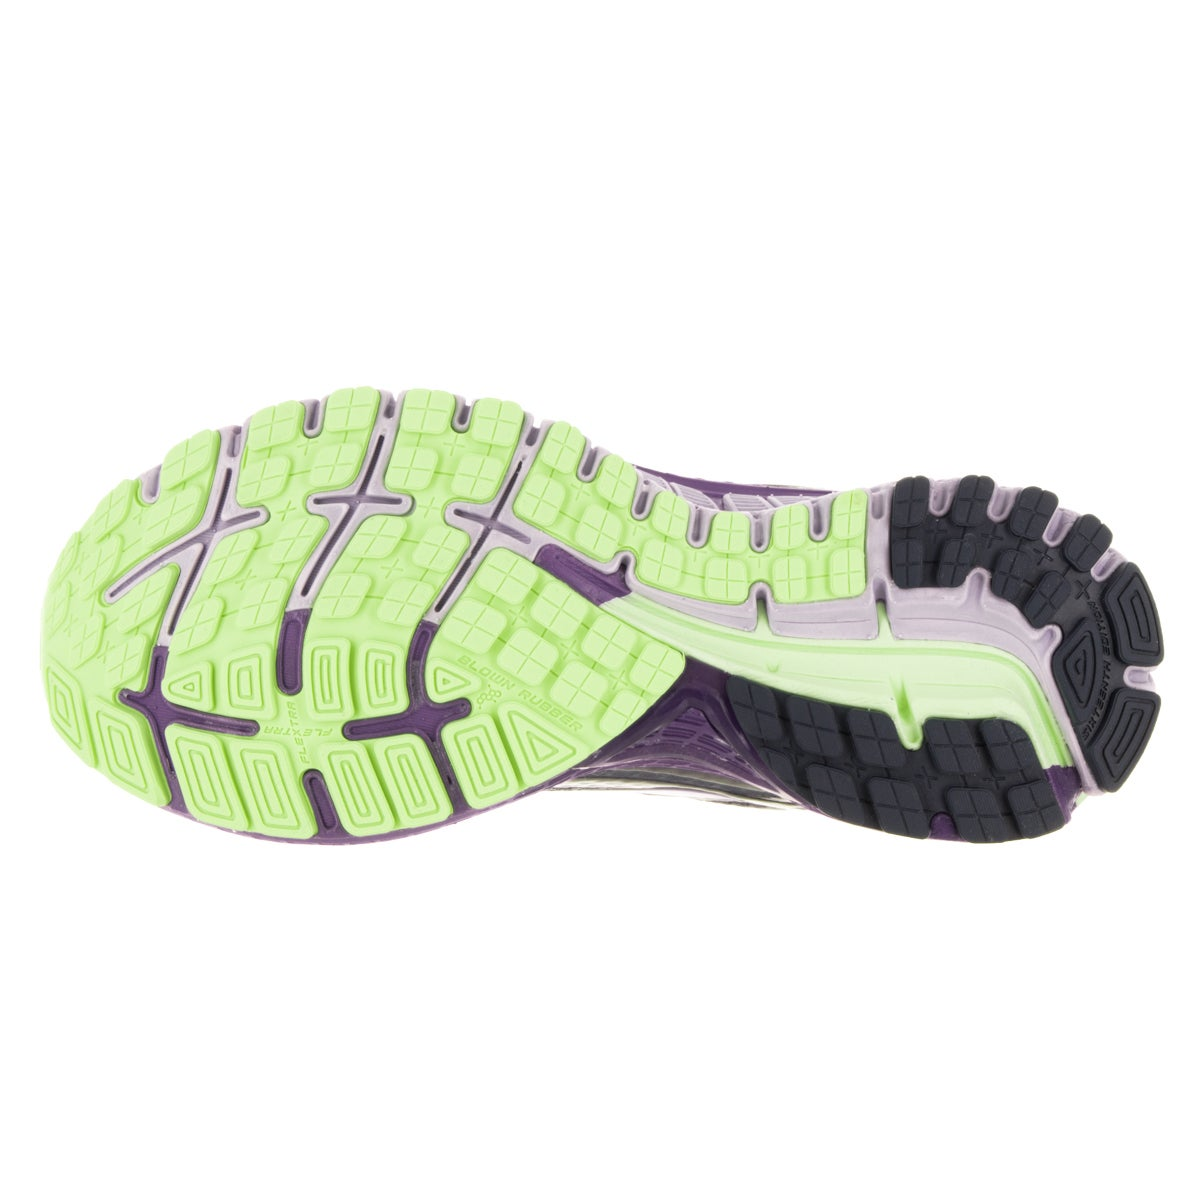 e9176a85bcd79 Shop Brooks Women s Adrenaline Gts 16 Passionflower Lavender Paradis  Running Shoe - Free Shipping Today - Overstock - 12324680